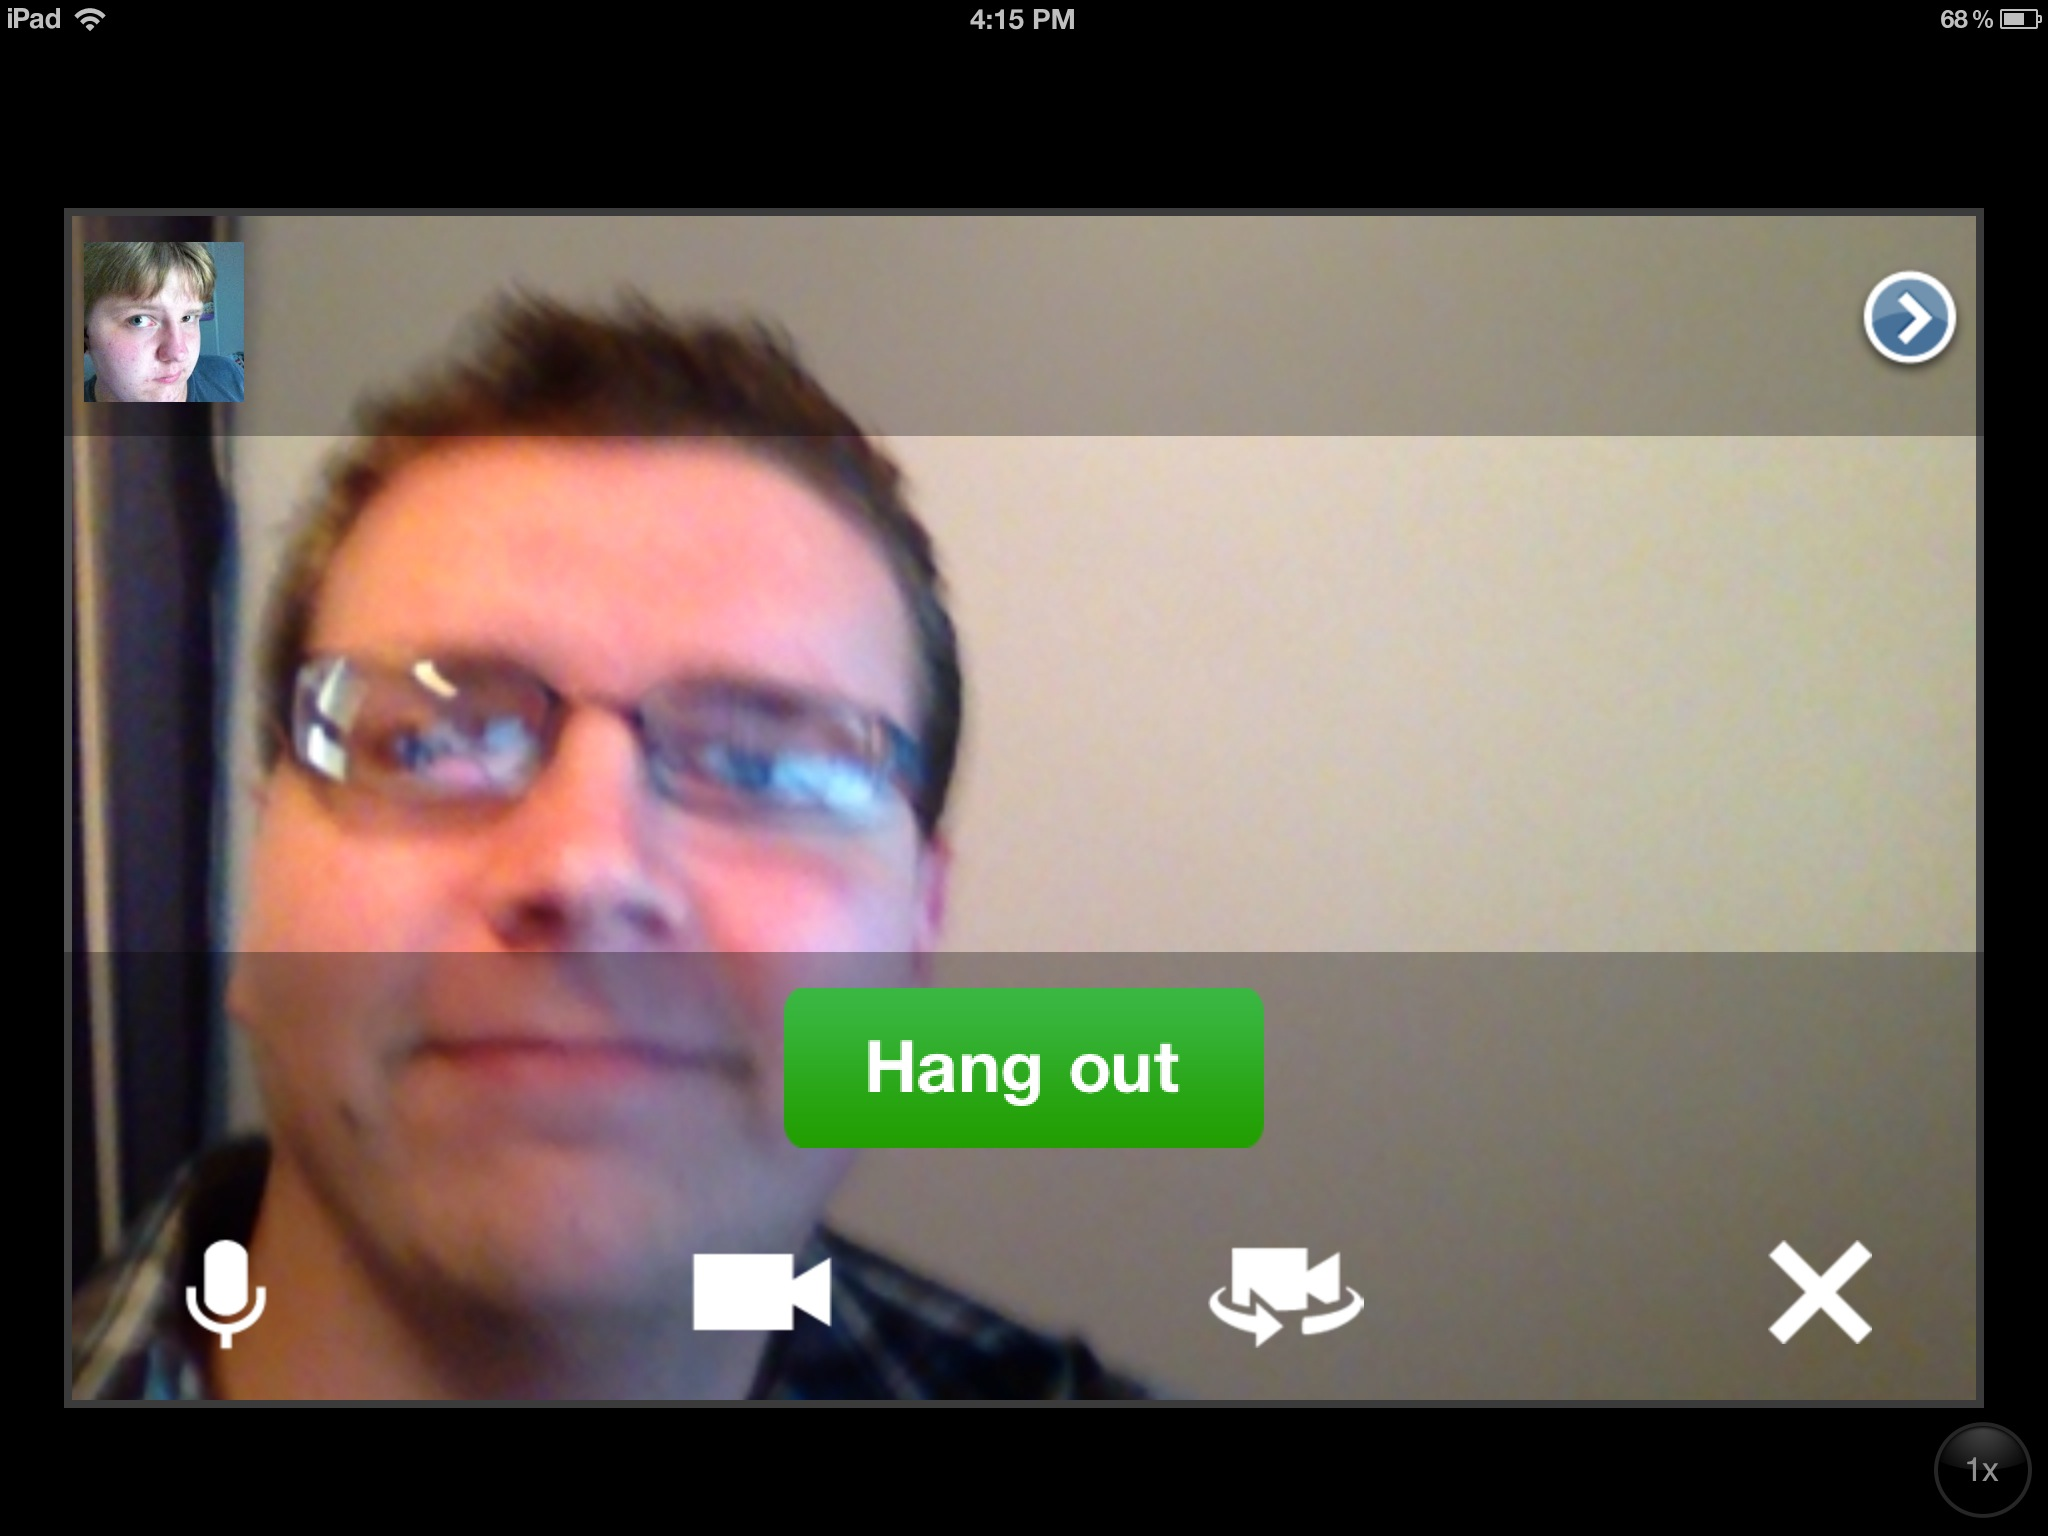 How To Join a Google+ Hangout From the iPad